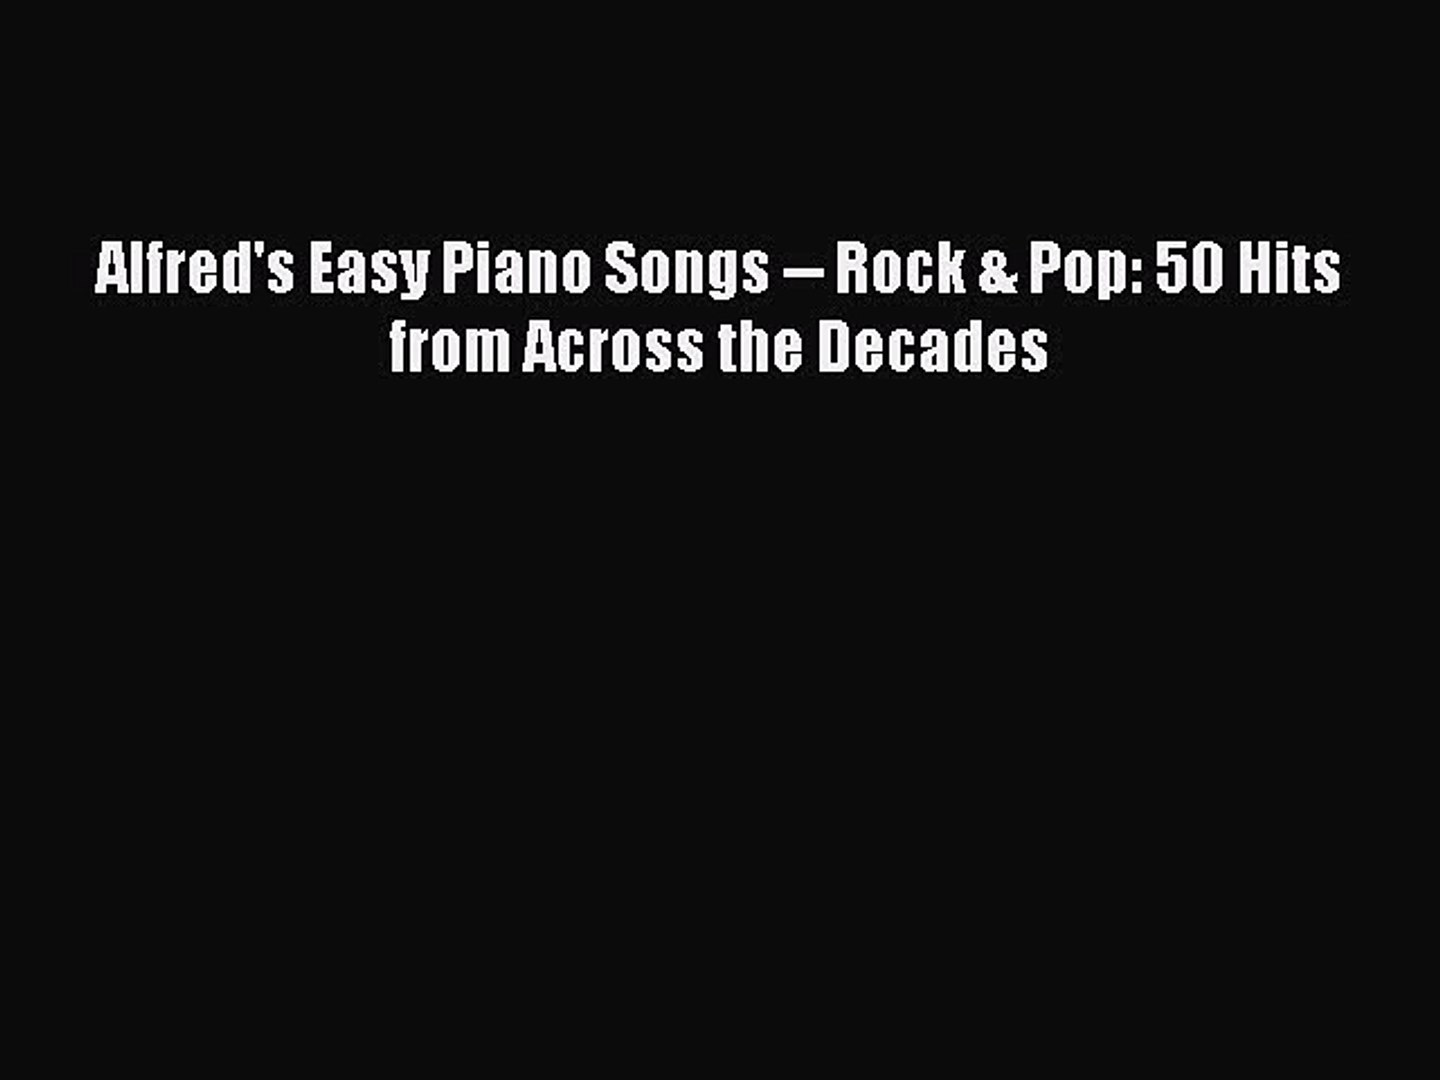 [PDF] Alfred's Easy Piano Songs -- Rock & Pop: 50 Hits from Across the  Decades [Download] Full